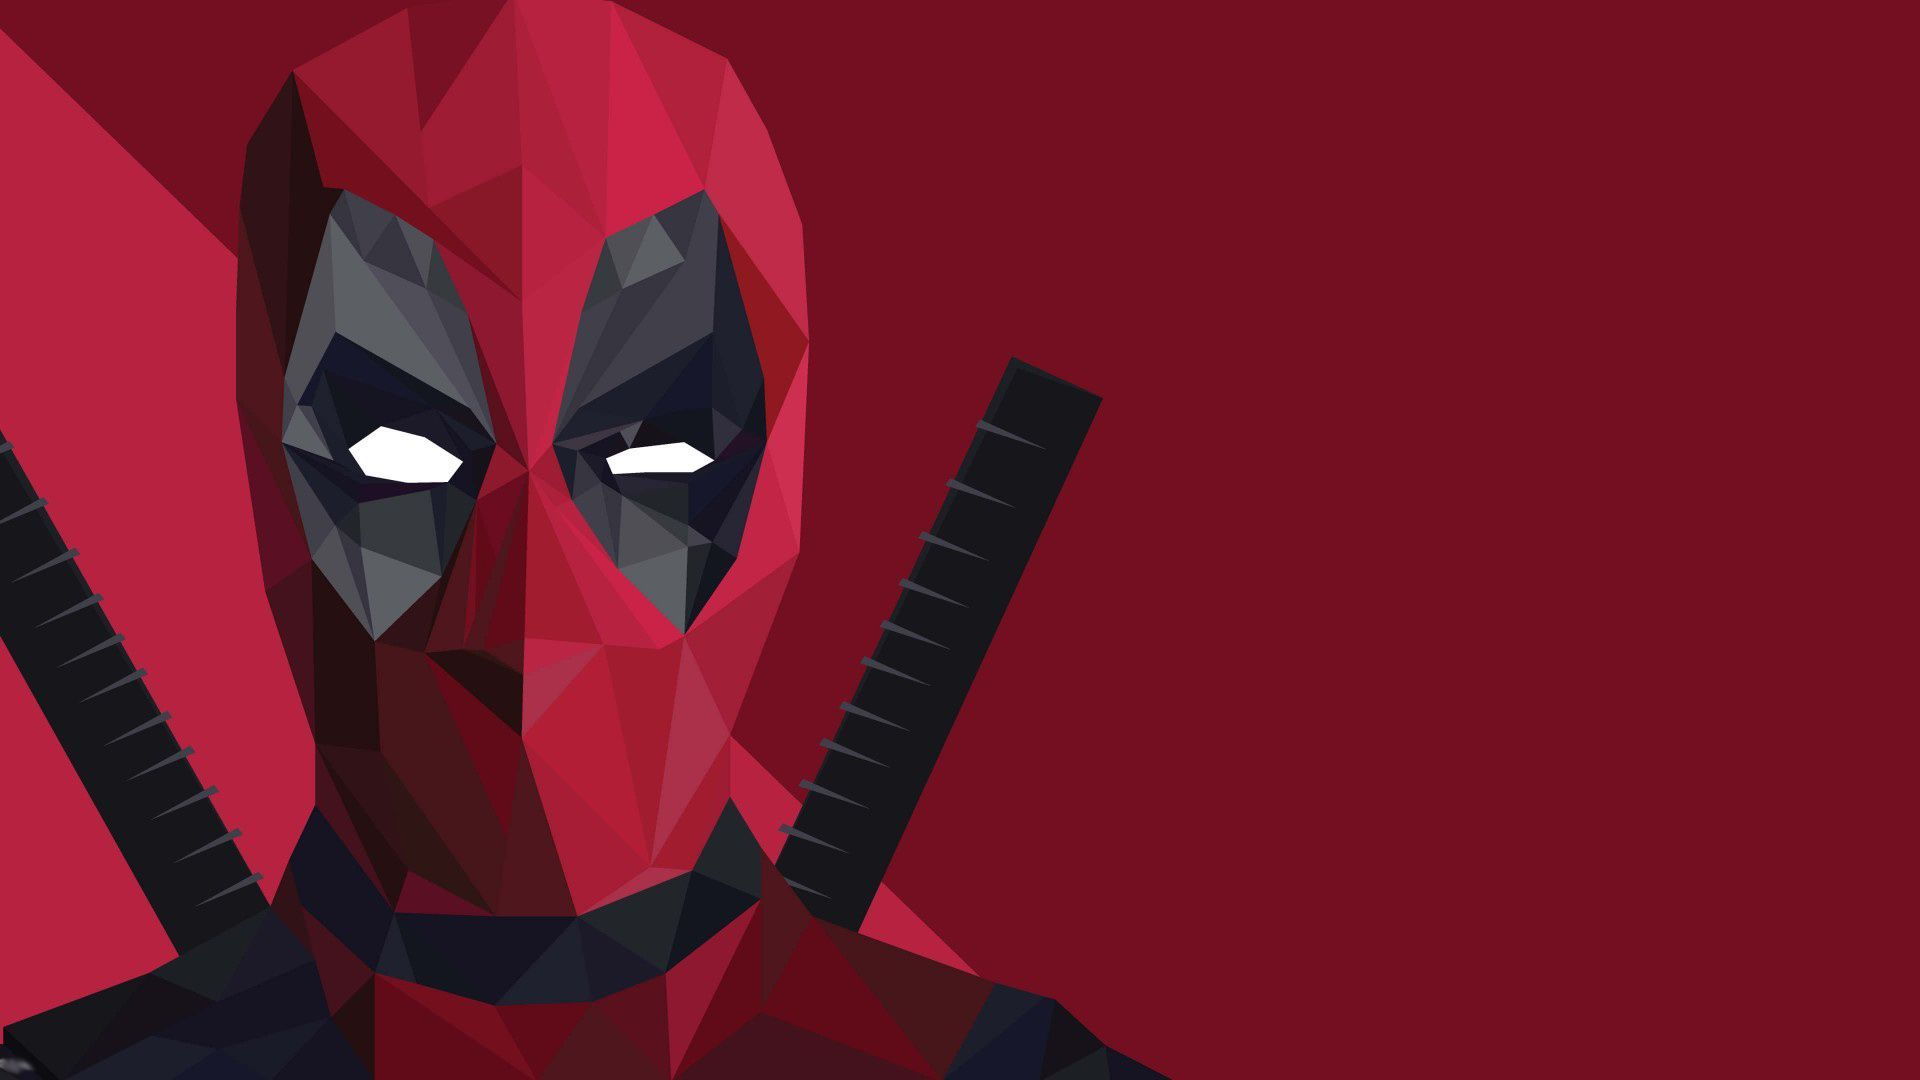 1920x1080 Cool Deadpool Wallpaper with Red Abstract Mask with White Eyes in ...